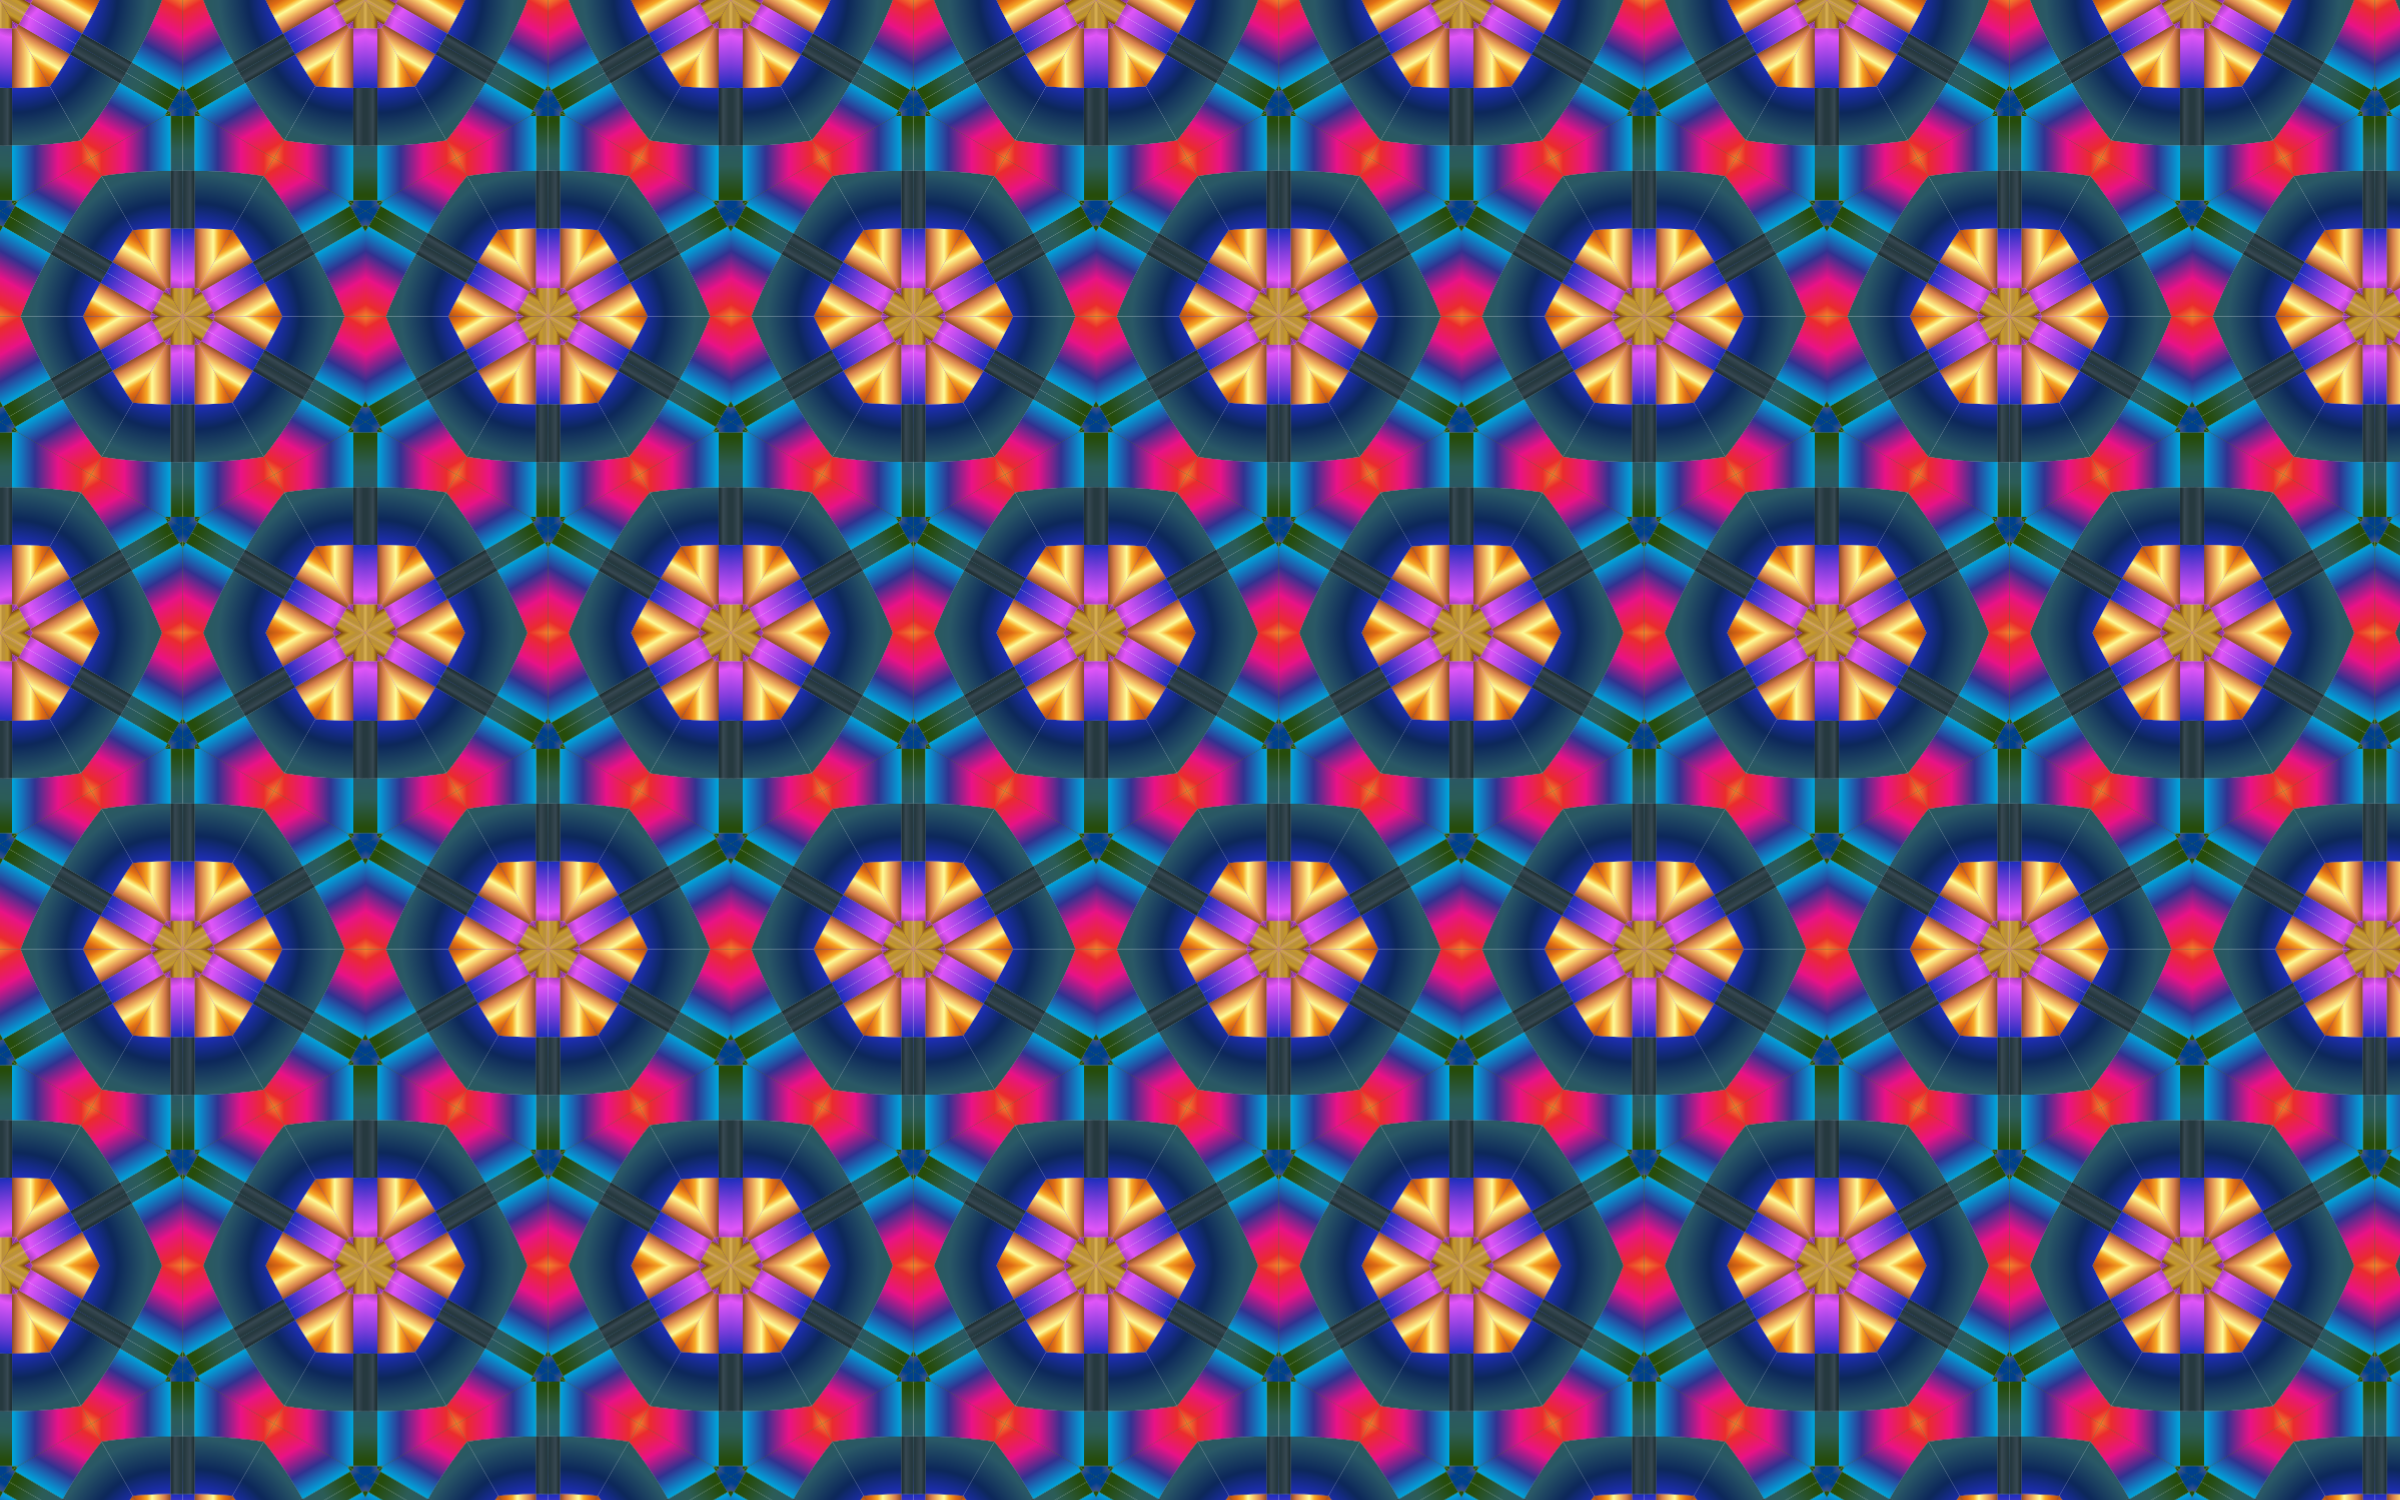 Seamless Pattern 84 by GDJ